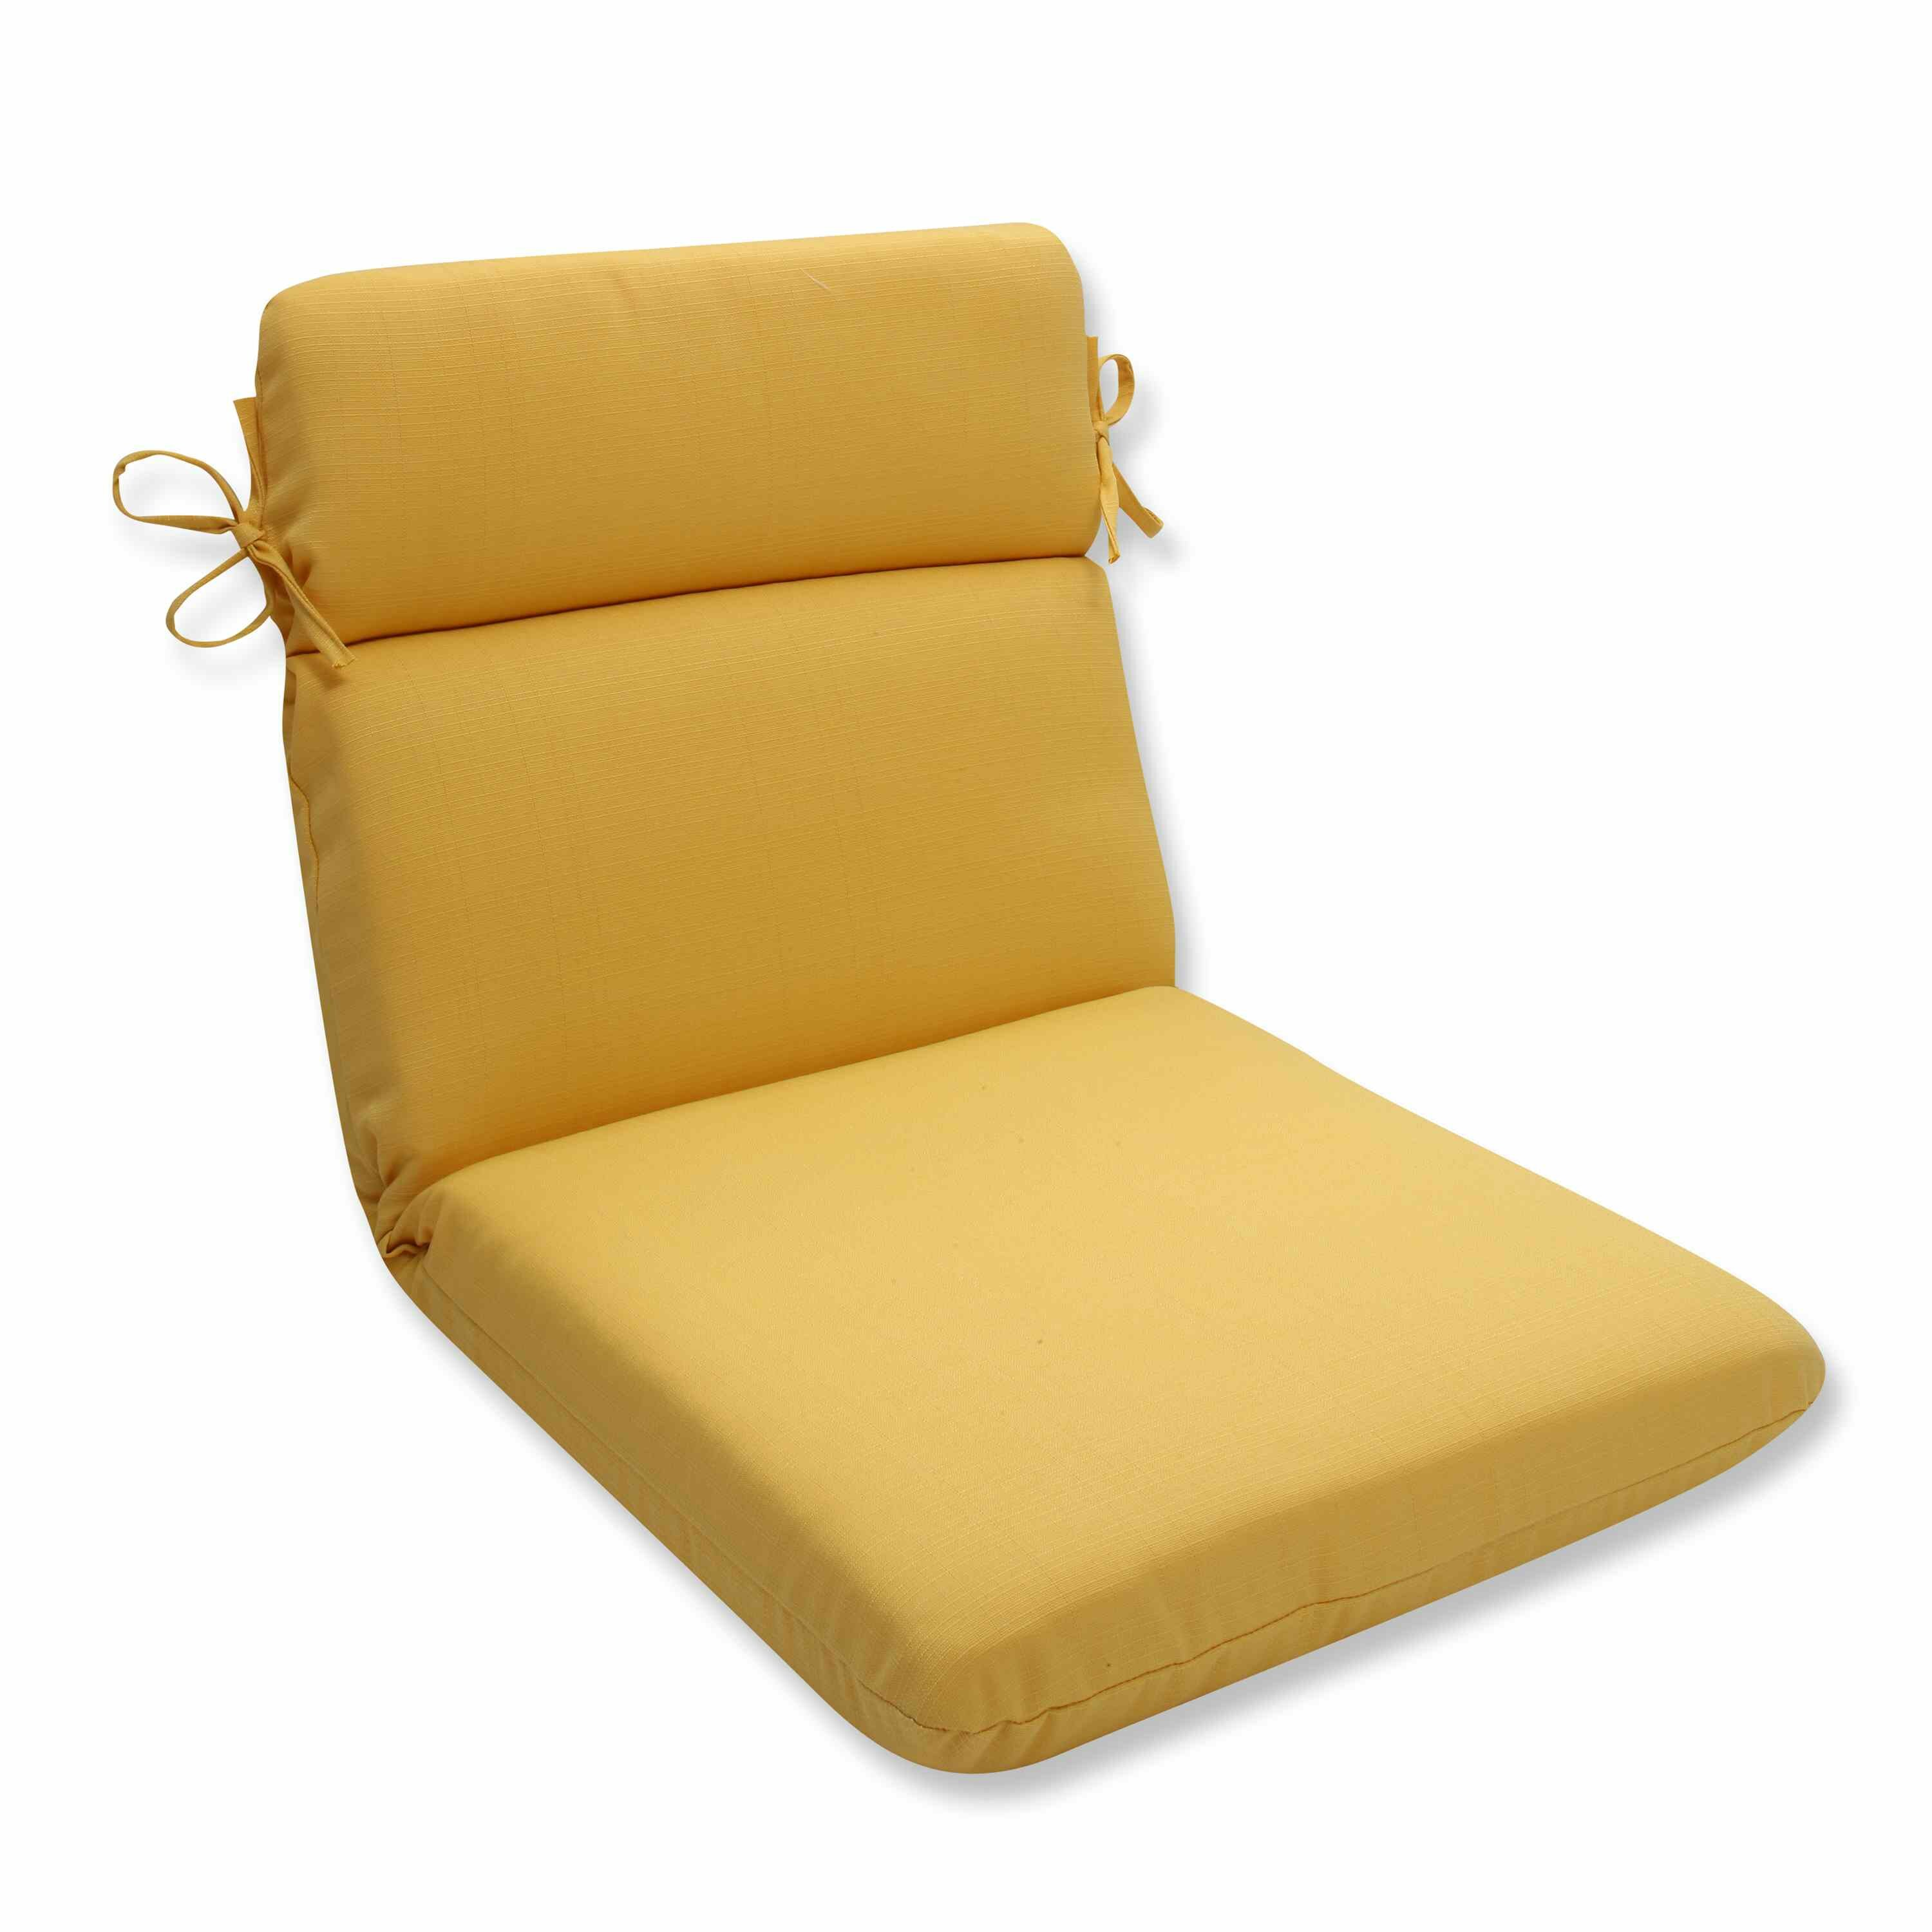 Highland Dunes Yellow Indoor Outdoor Dining Chair Cushion Reviews Wayfair